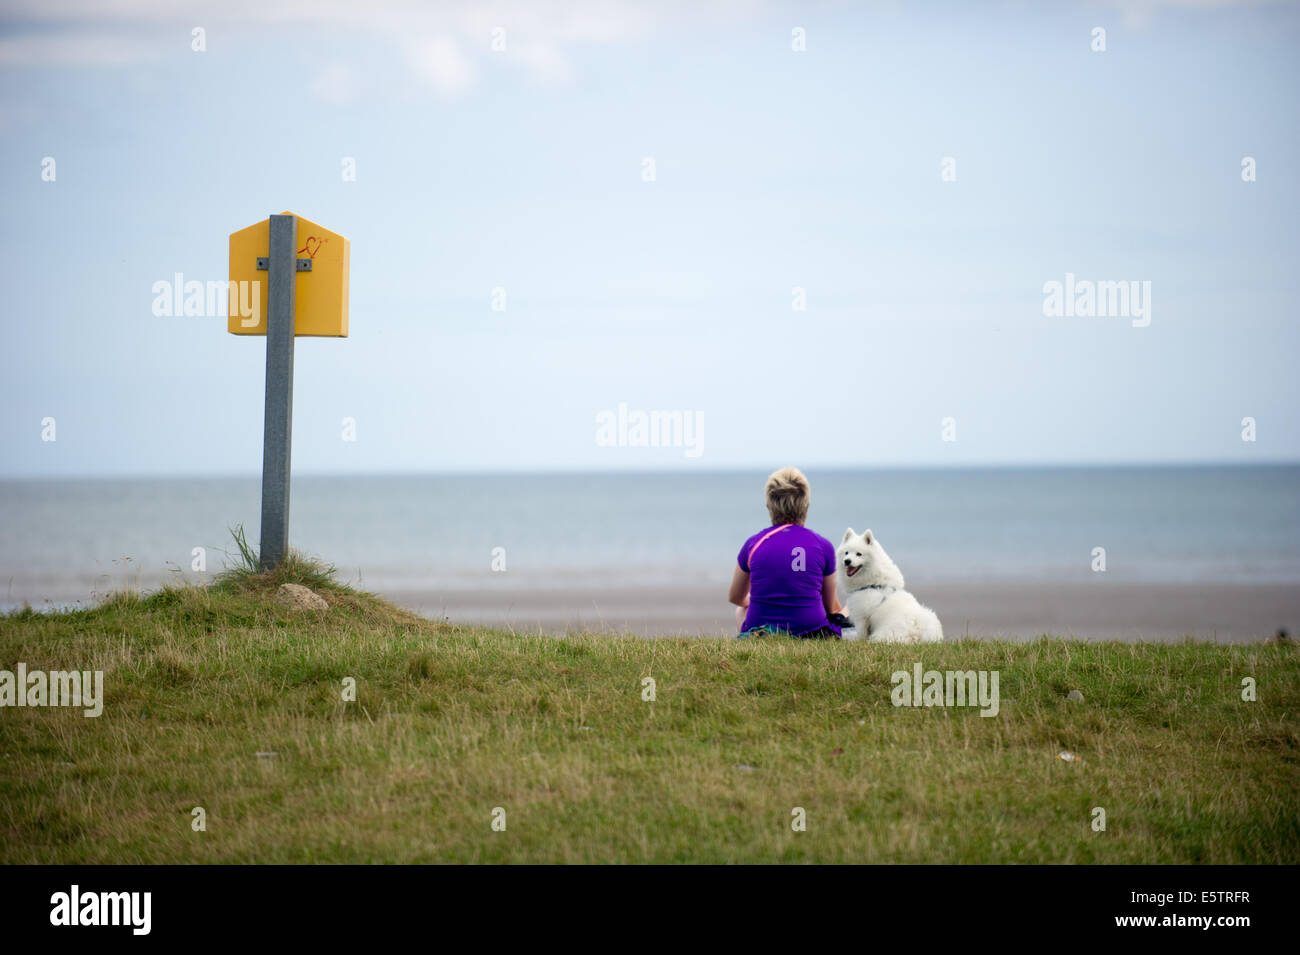 Port beach, County Louth, Ireland. 6th August, 2014. Karen Winters from Clogherhead, County Louth with her dog 'Lucky', - Stock Image